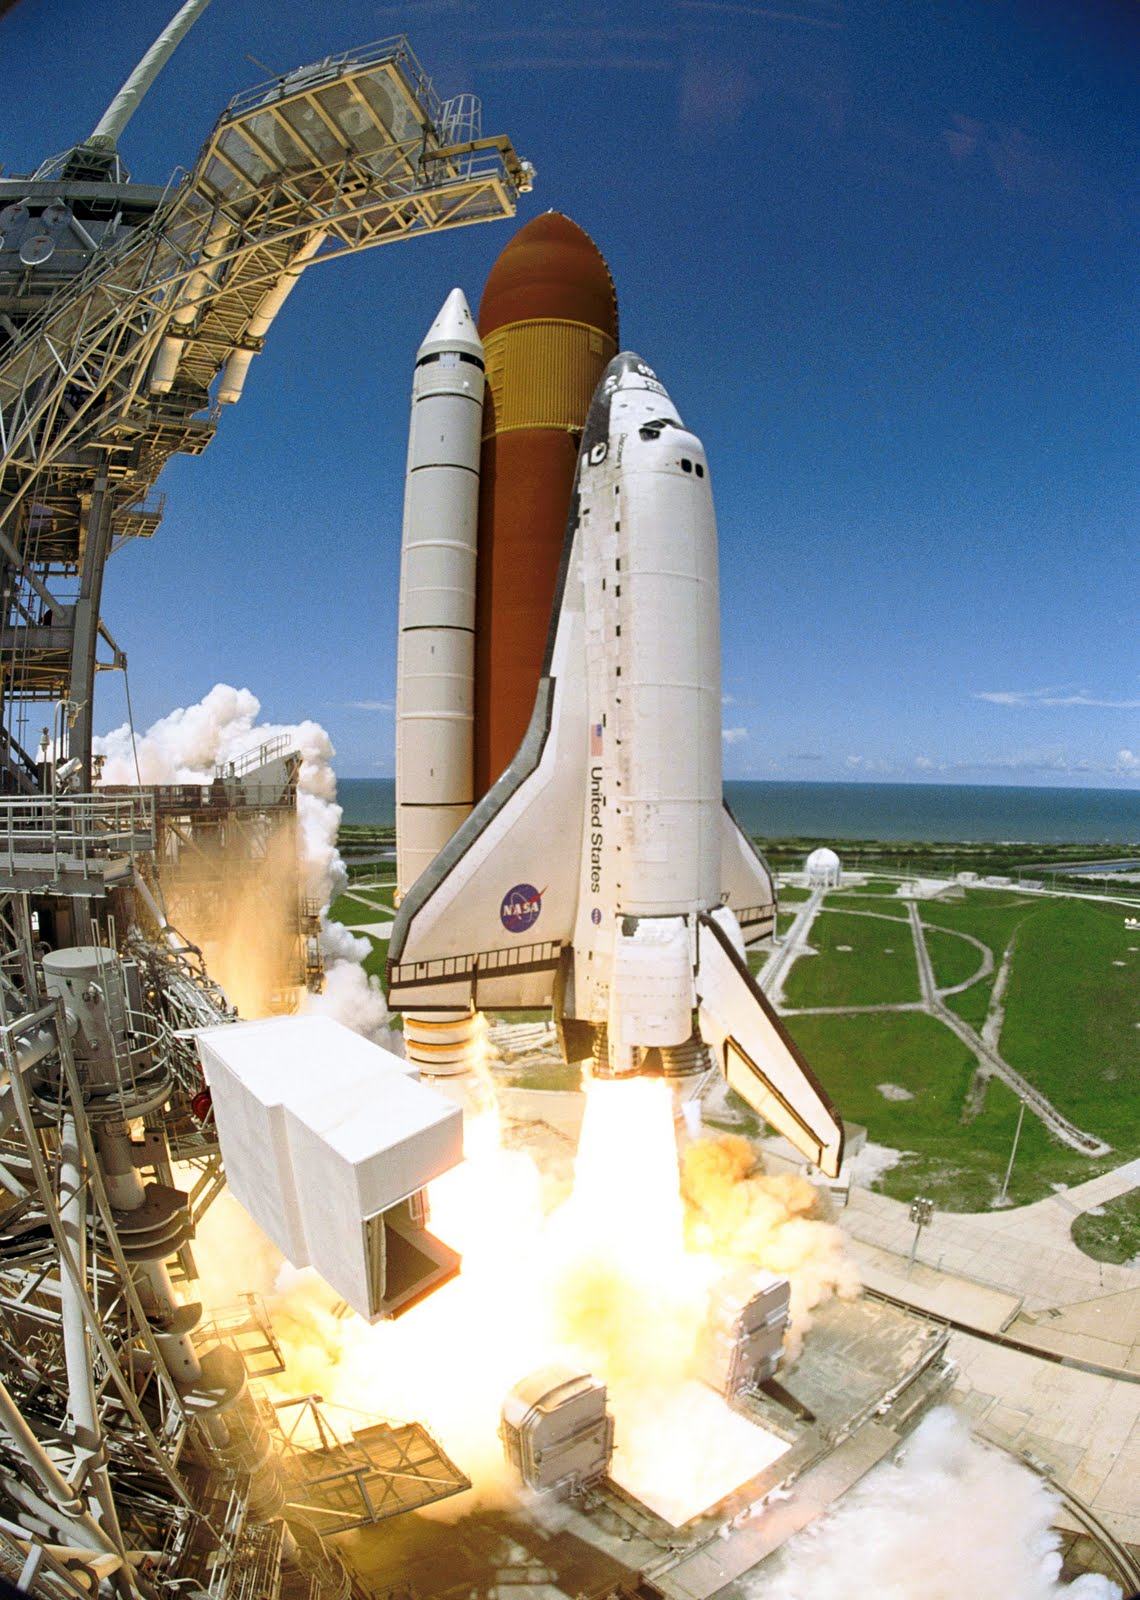 space shuttle launch from station - photo #31